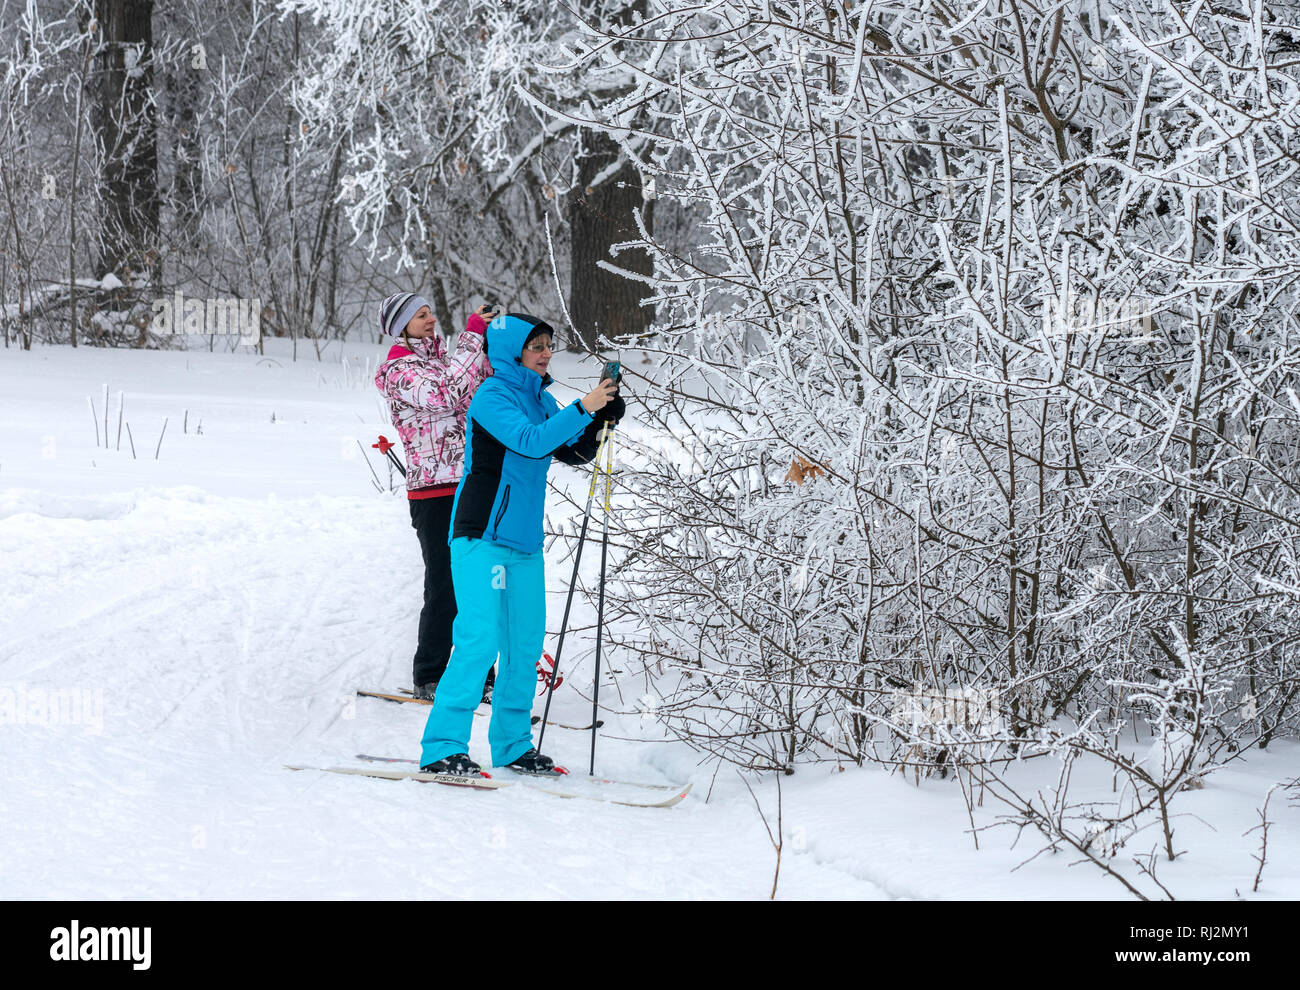 Two skiers stopped near the Bush and take pictures of frost on the branches on their smartphones - Stock Image